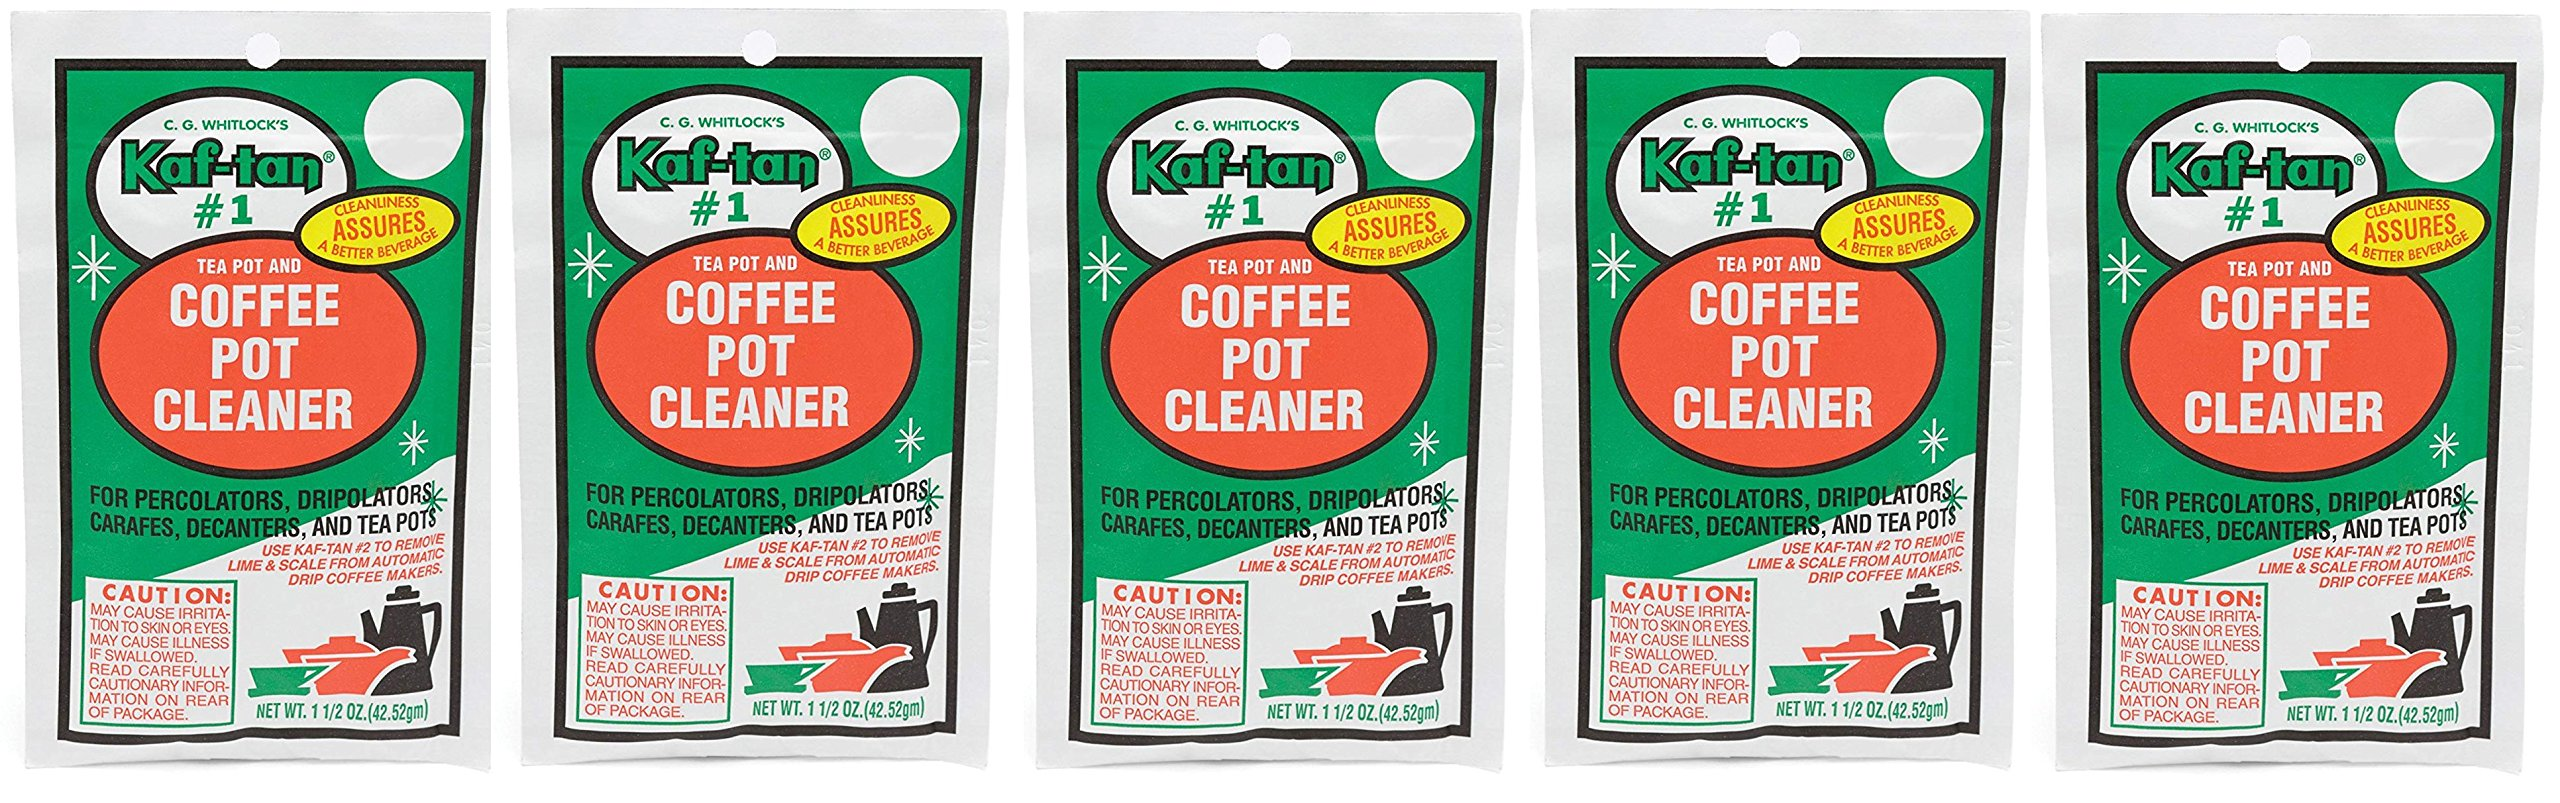 KAF-TAN #1 Coffee Pot Cleaner/Stain Remover, 1.5 Ounce Packet (5-Pack)